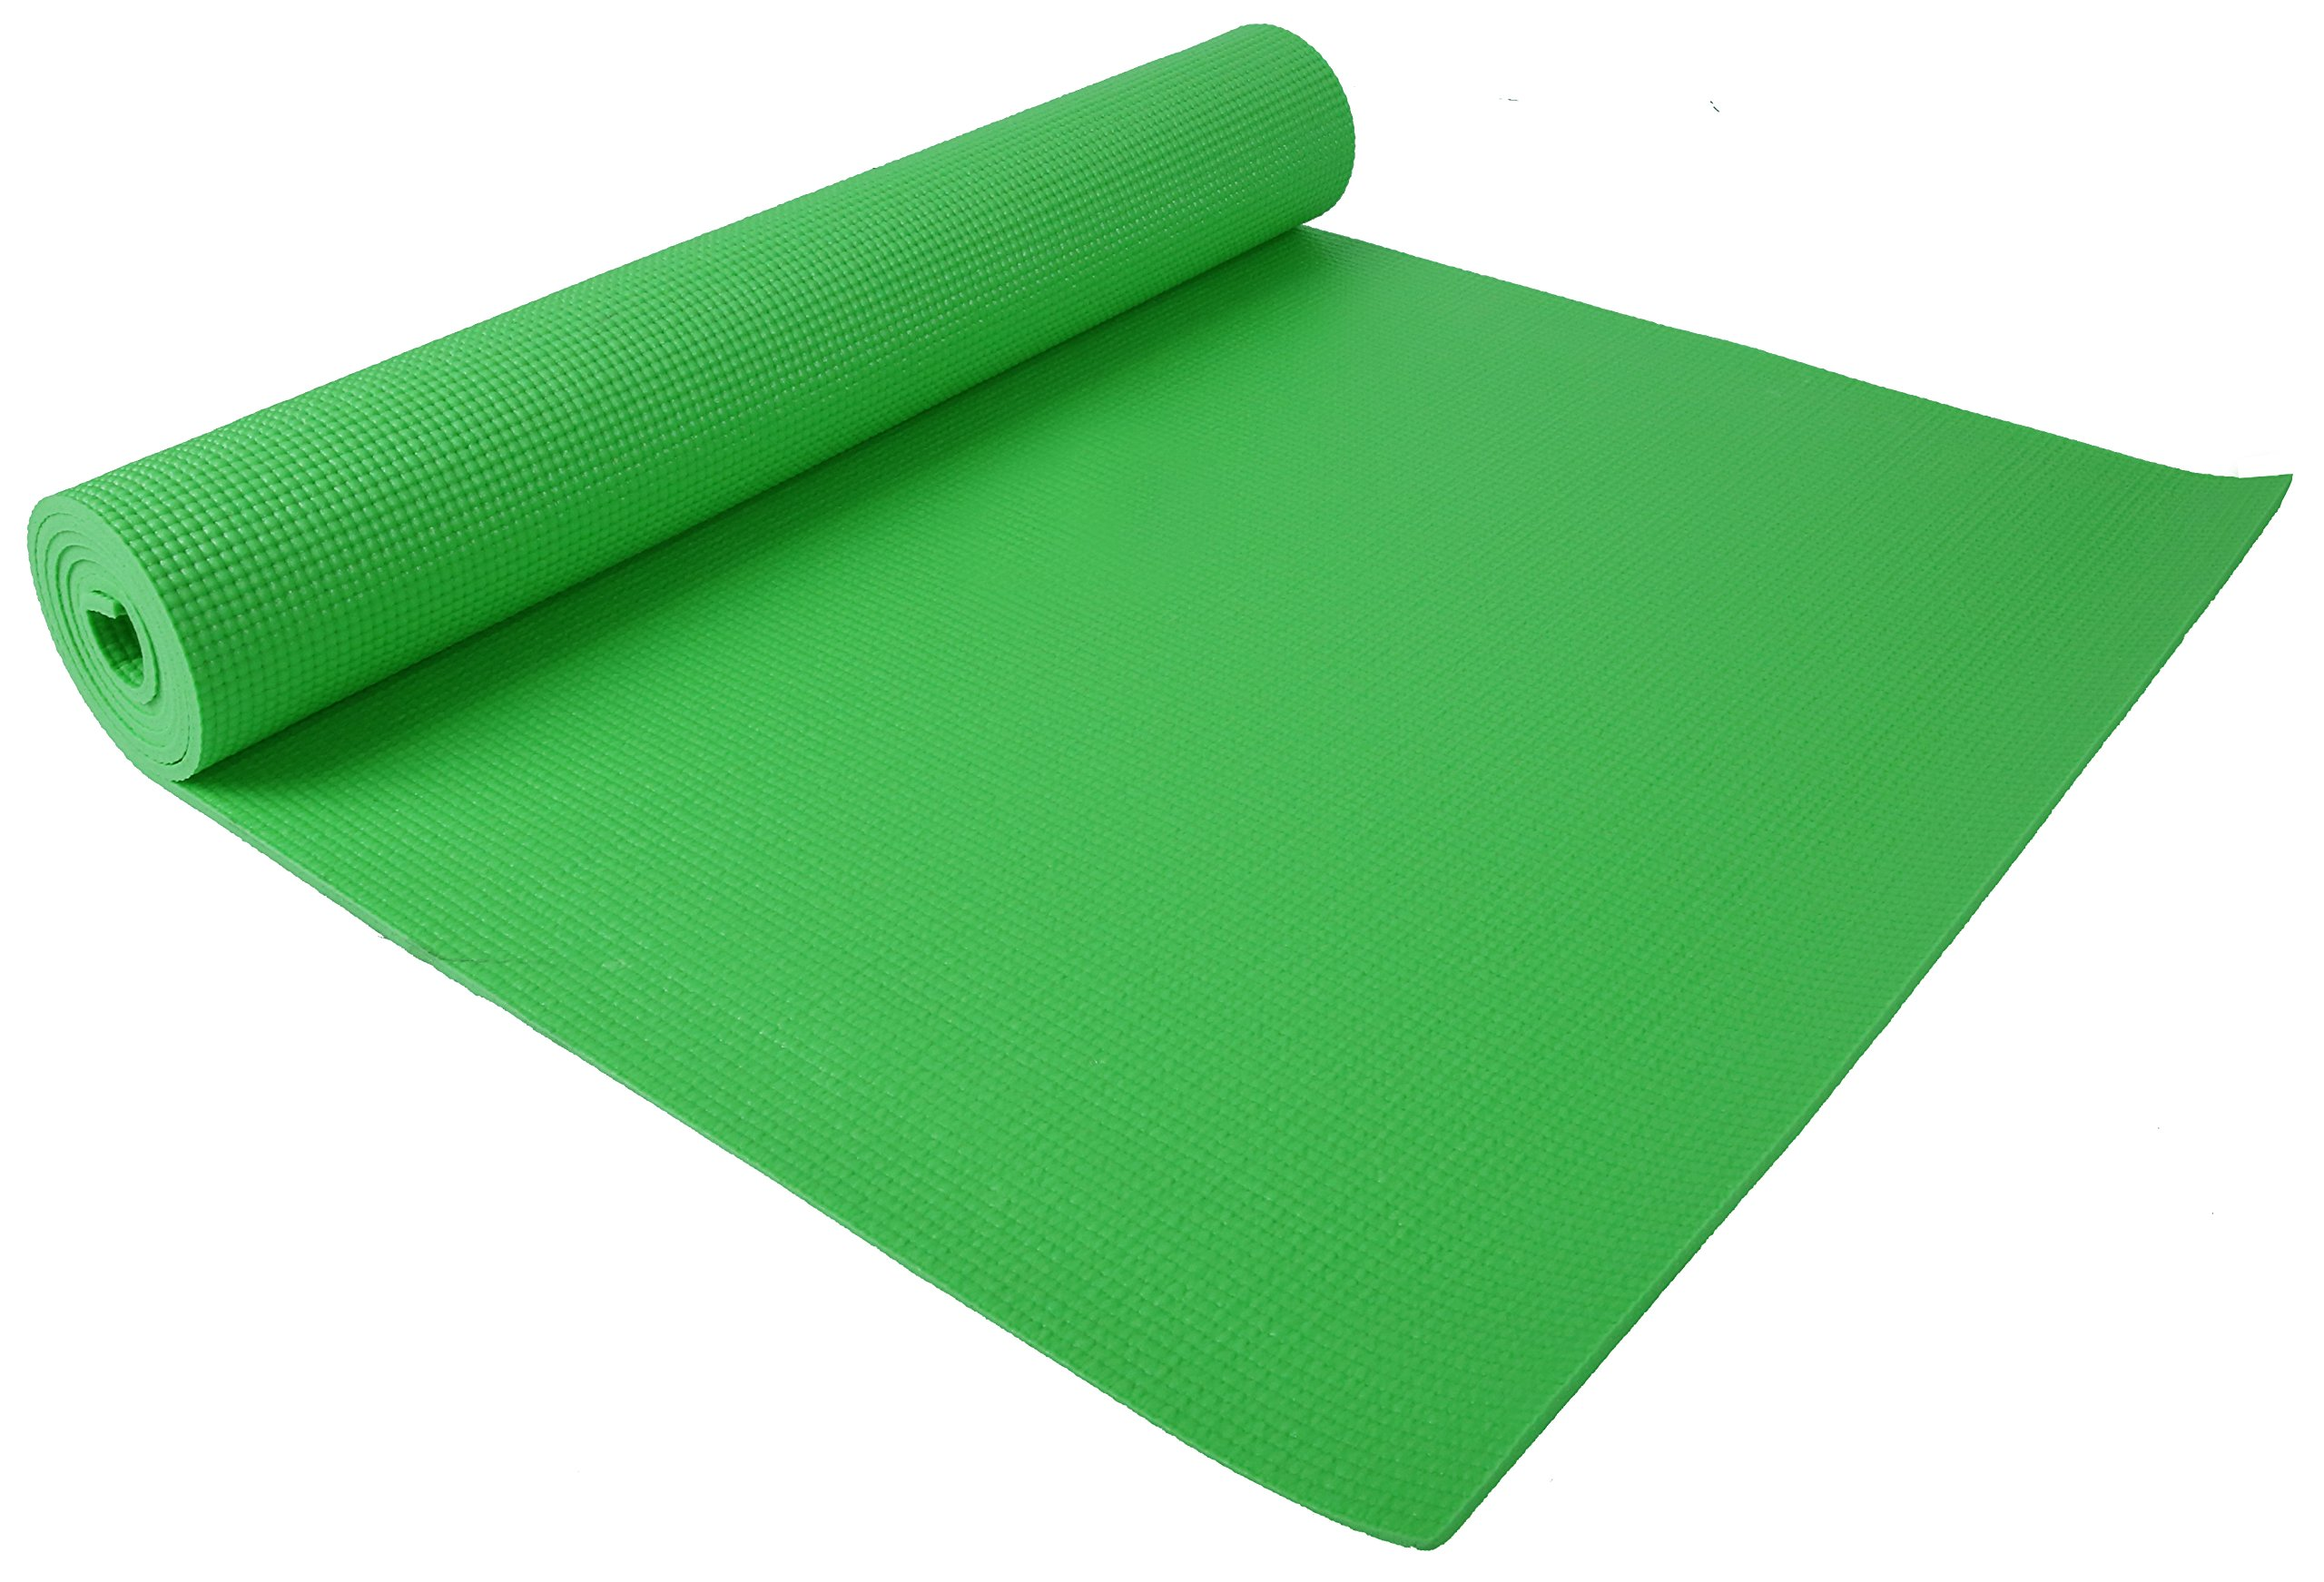 6mm Thick Trimming Shop Black Exercise Yoga Mat Non Slip With Comfort Foam And Yoga Instructions All Purpose Exercise Mats Konozsigns Com